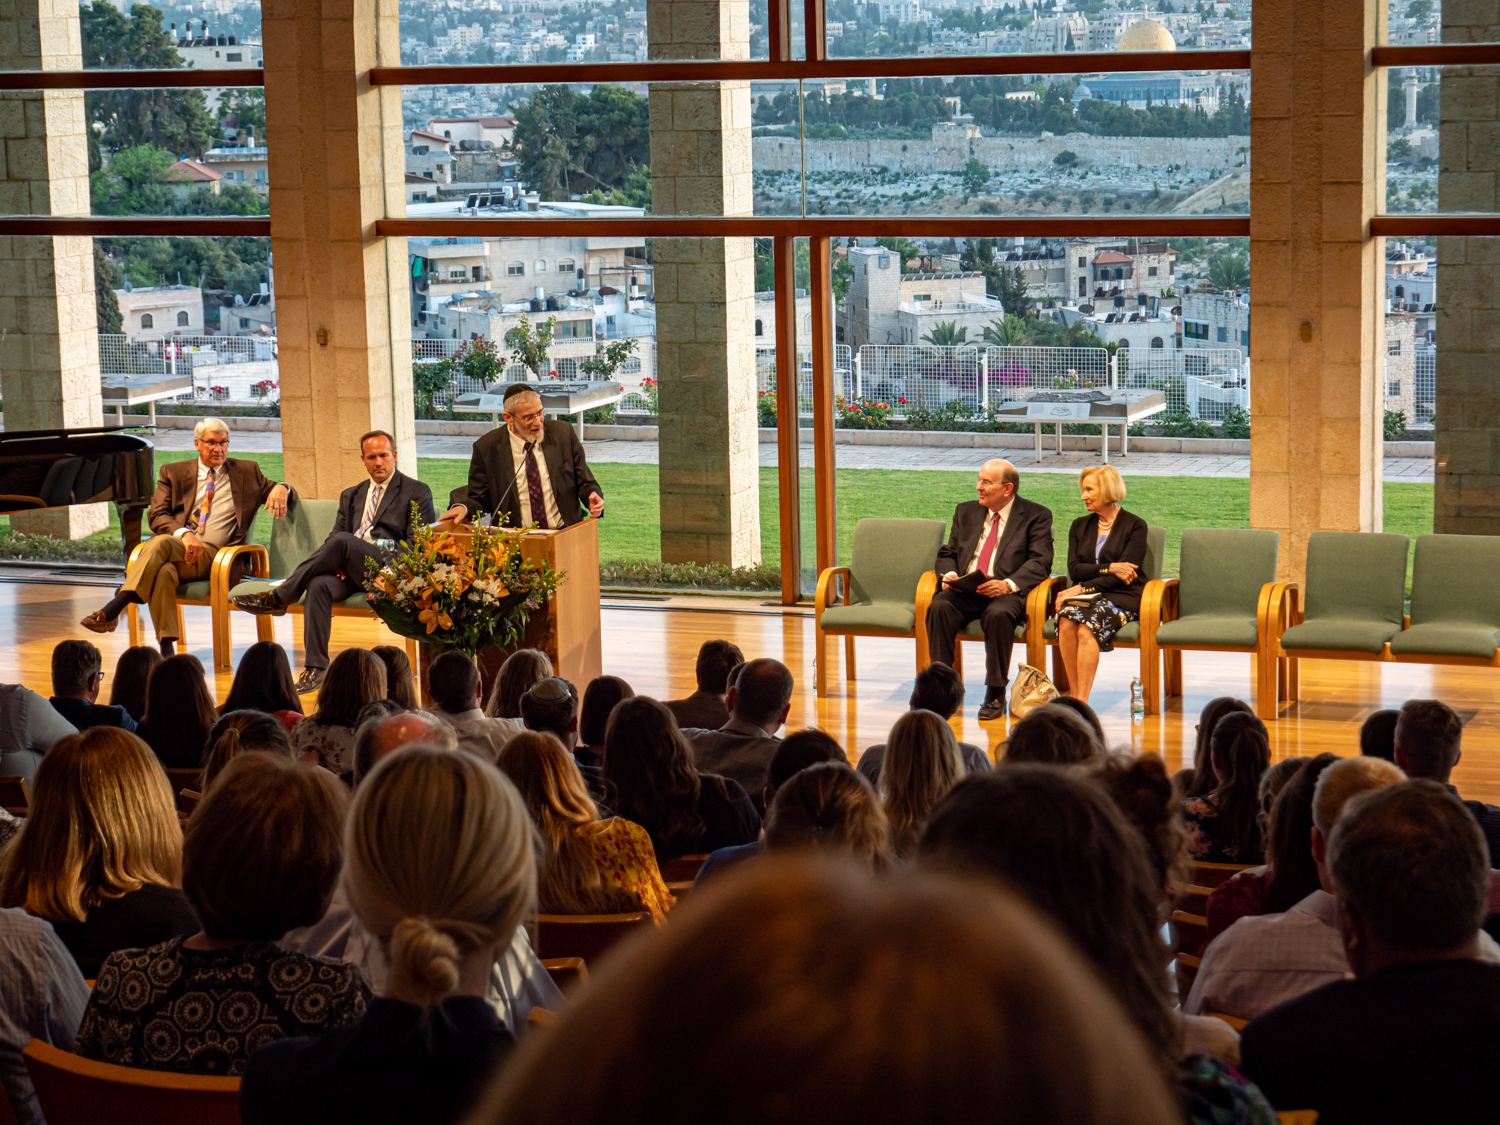 Rabbi Michael Melchior, chief rabbi of Norway, speaks at the semiannual Jewish-Latter-day Saint Dialogue at the BYU Jerusalem Center on June 5.